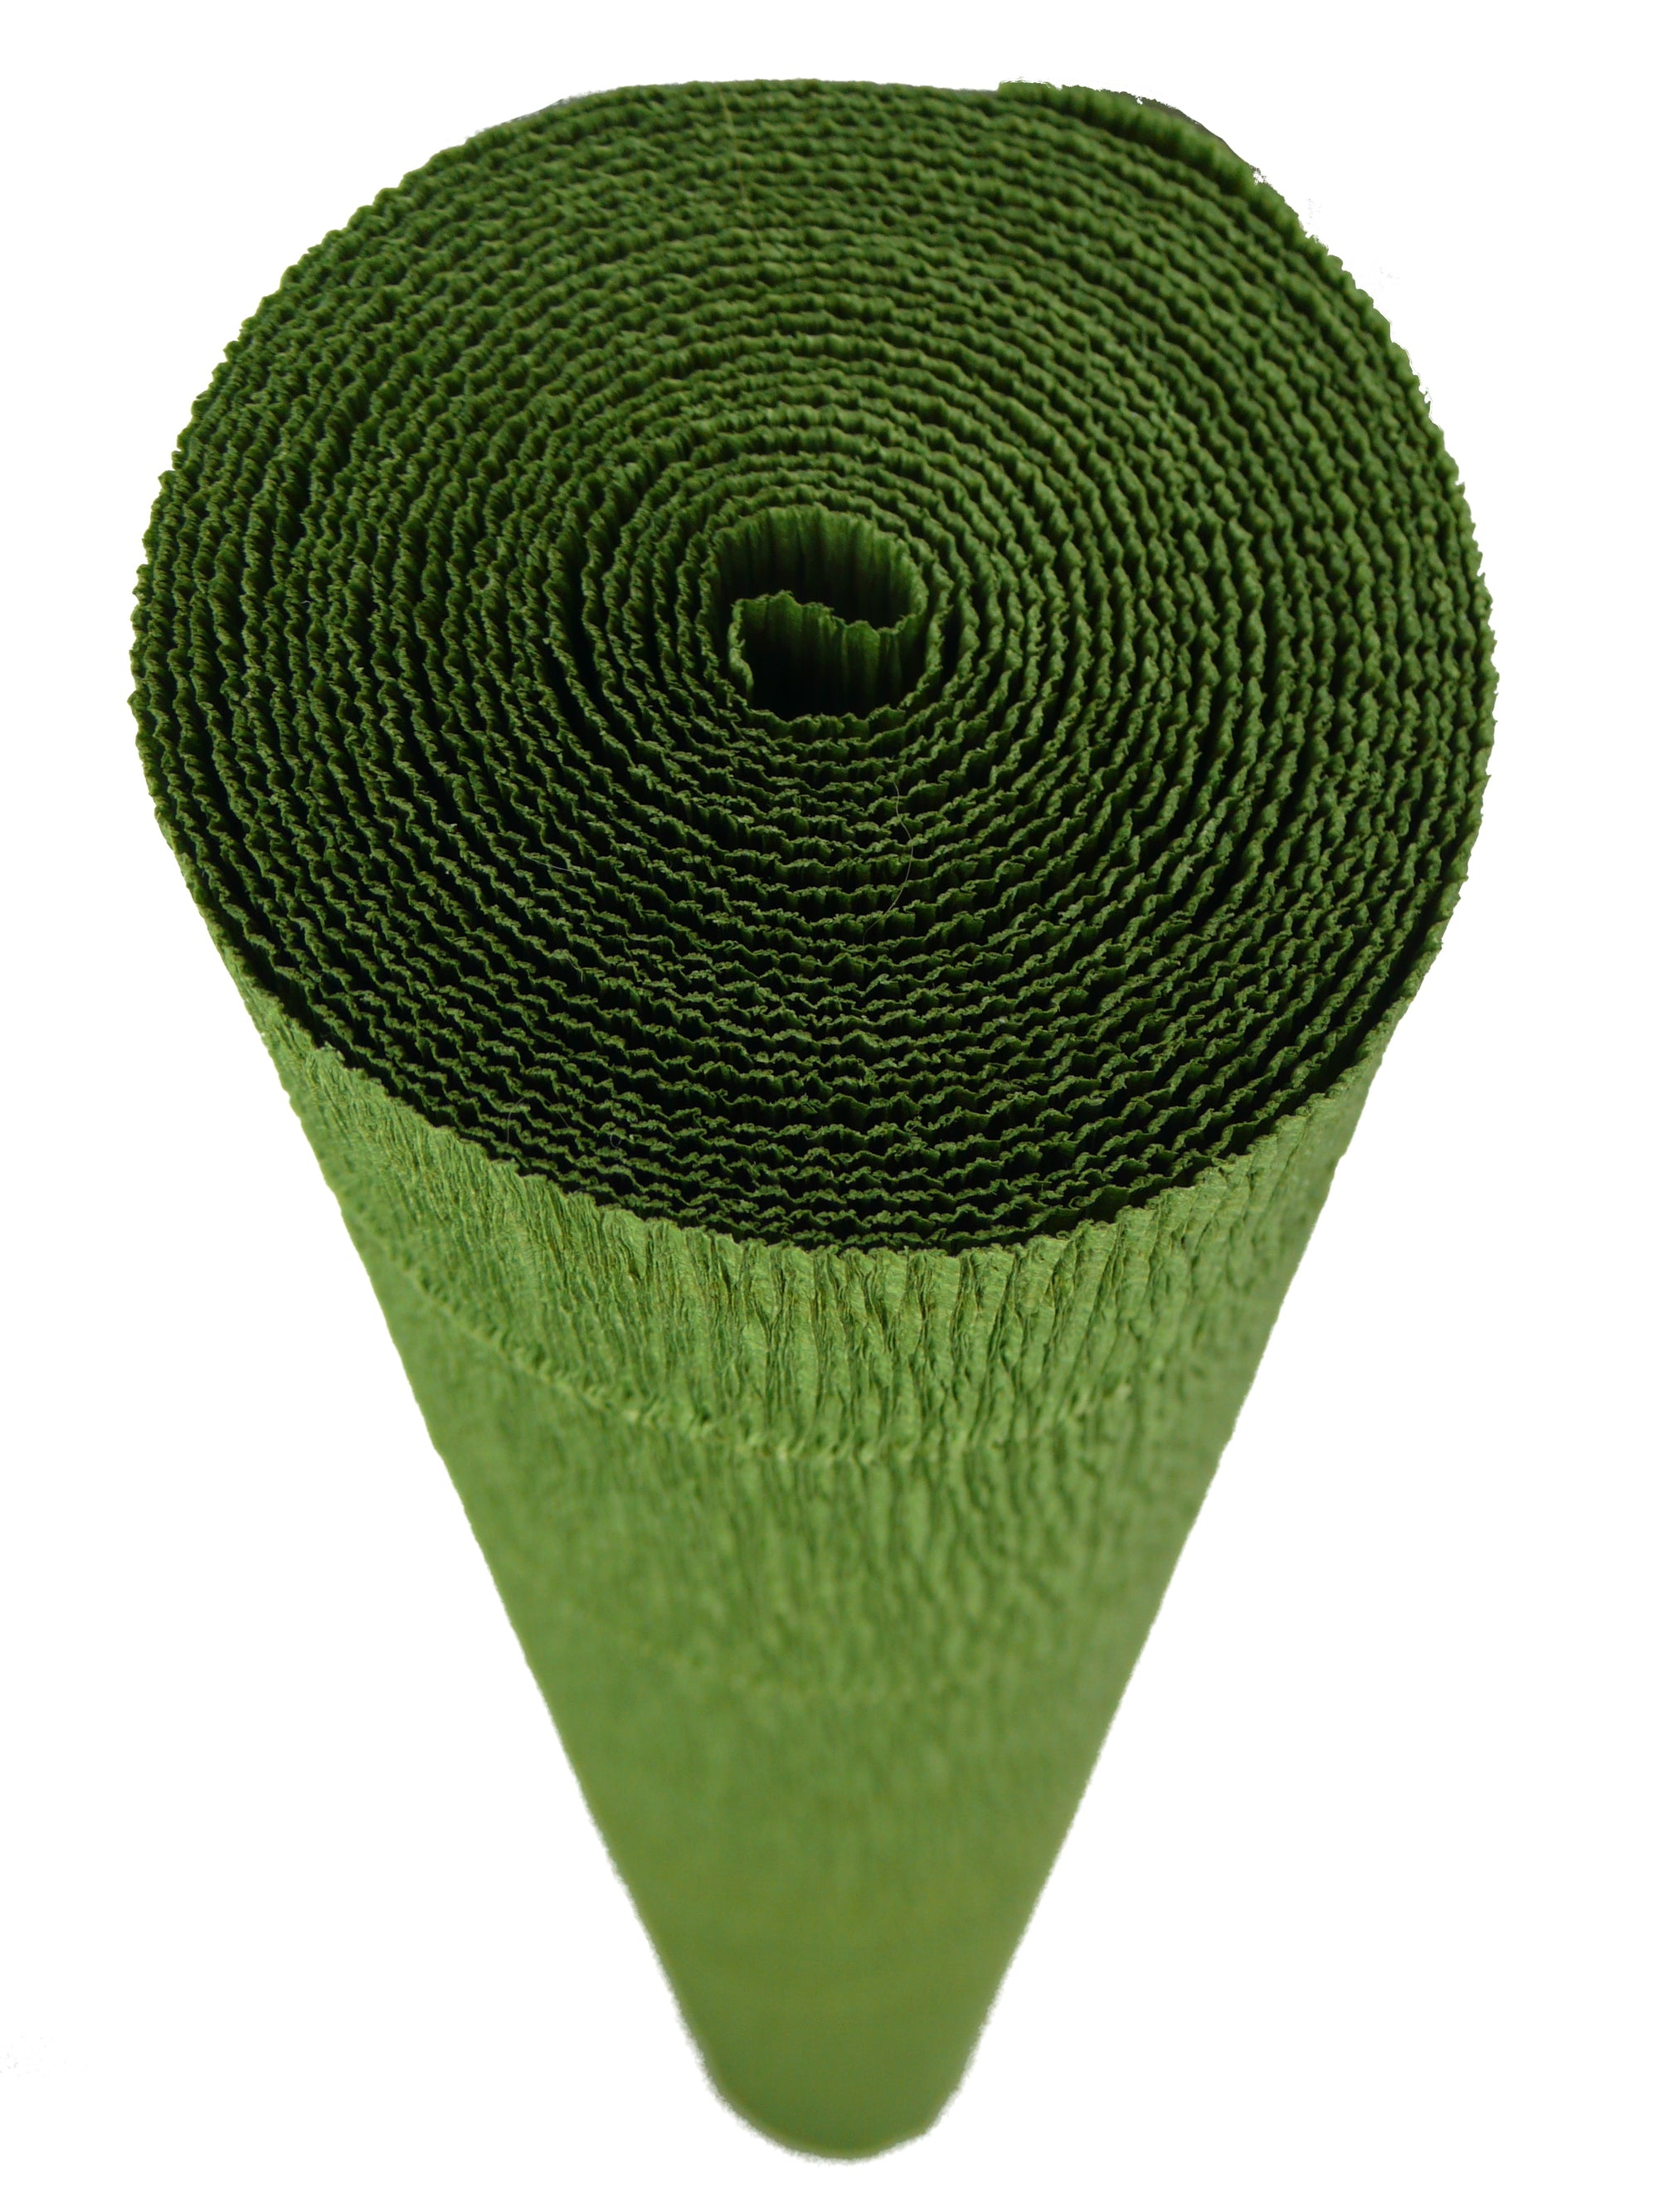 Italian Crepe Paper roll 180 gram - 622 Dark Khaki Green BY TIFFANIE TURNER